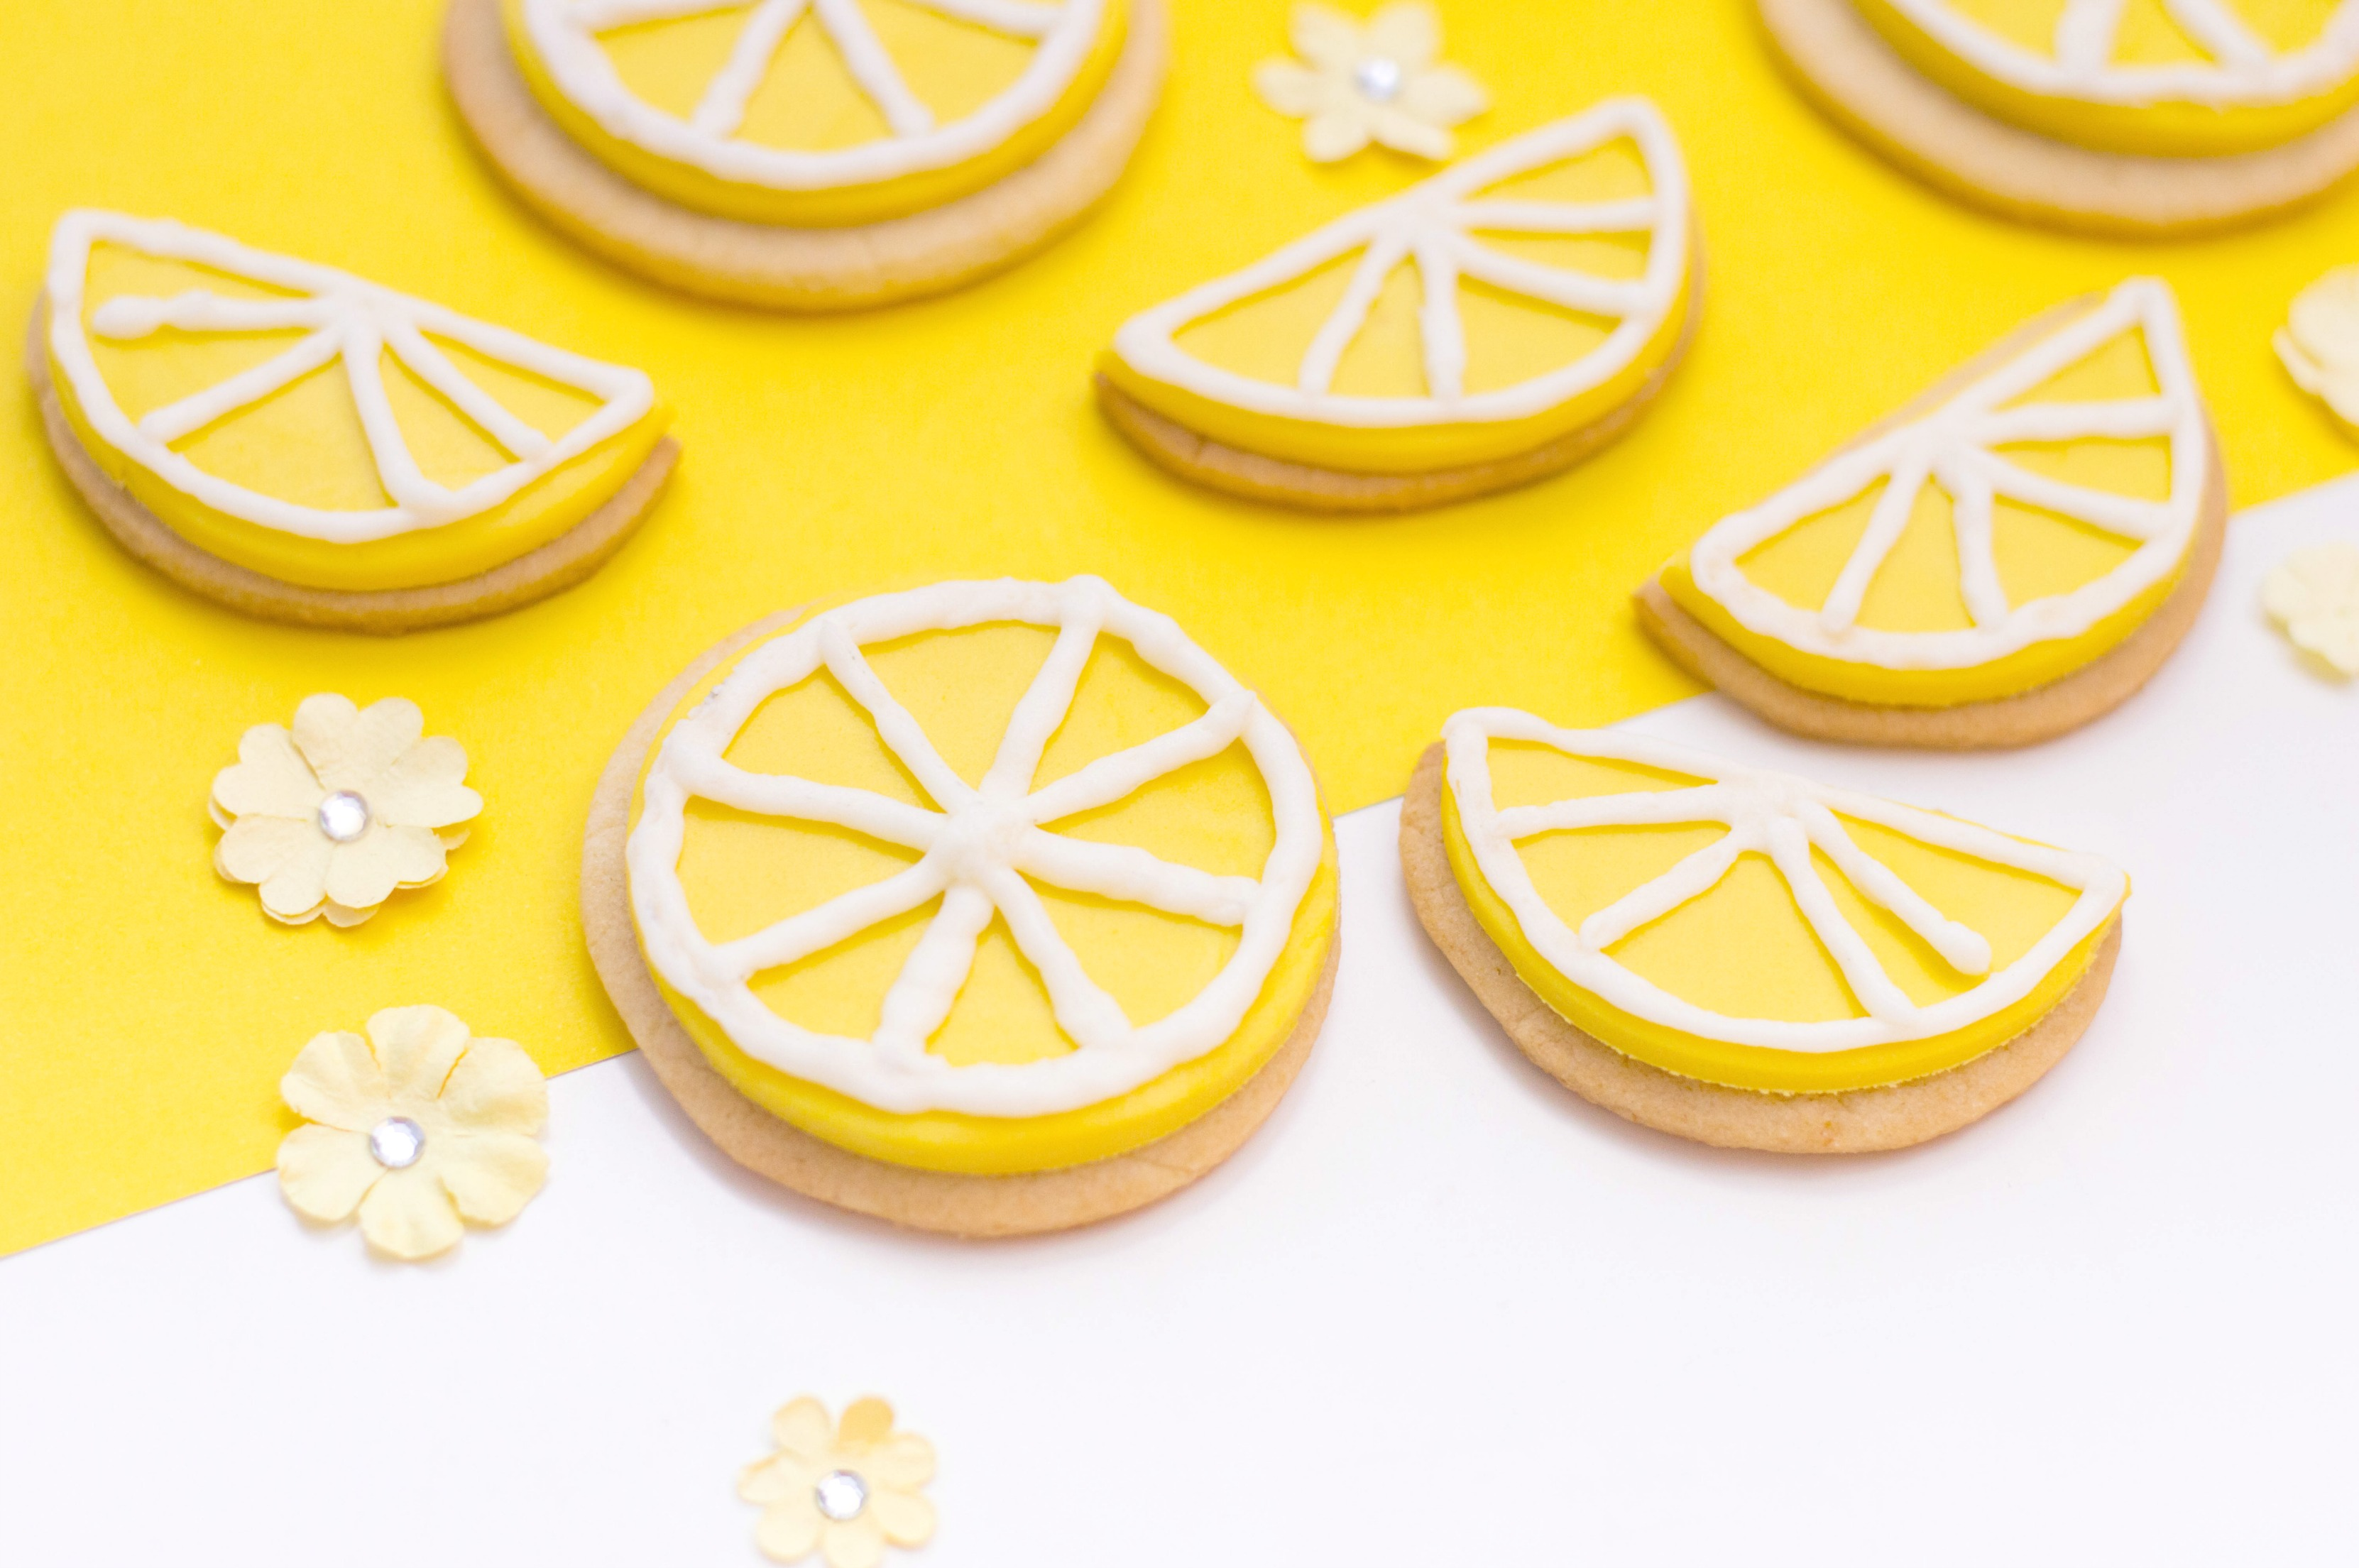 Close up of lemon slices and wedges sugar cookies, iced and ready to eat on a yellow and white background.